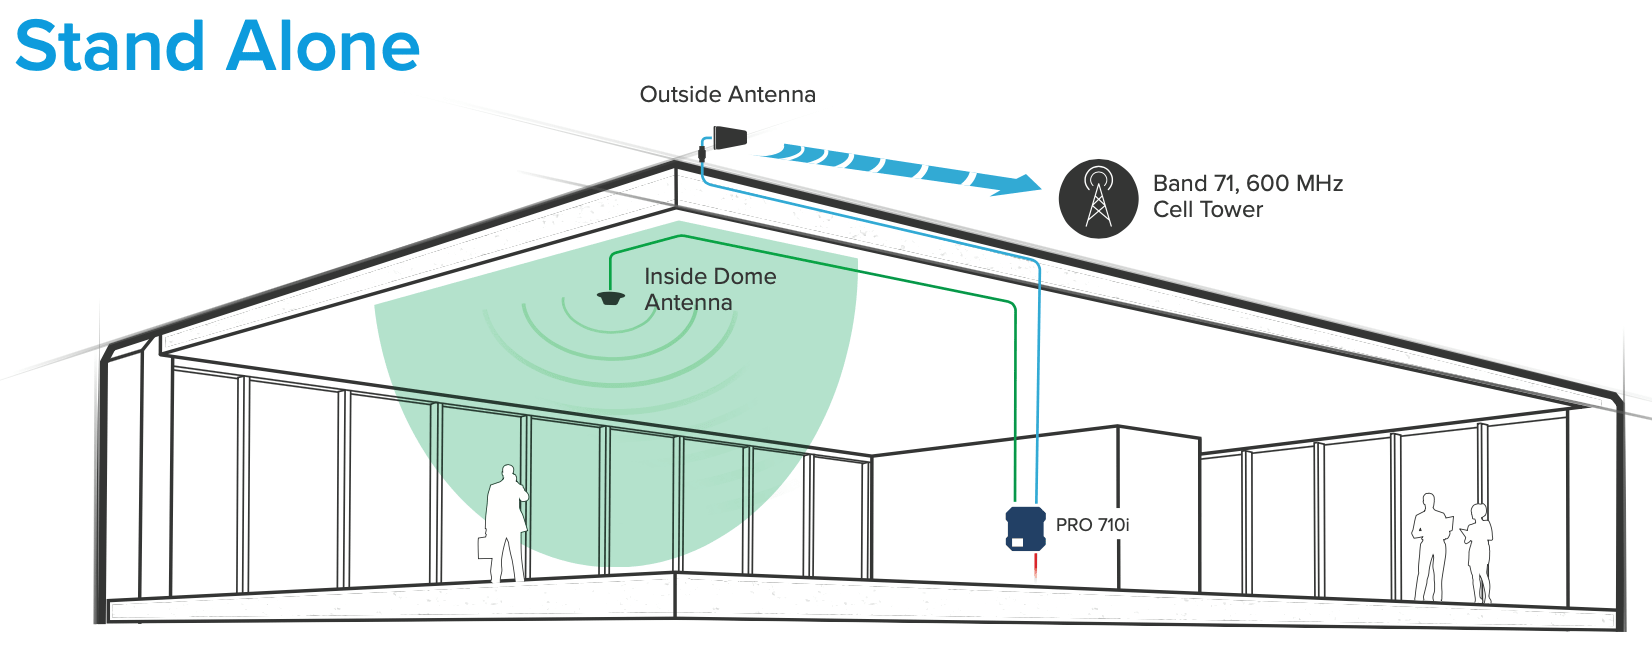 Stand-alone installation, providing cell coverage for band 71 only